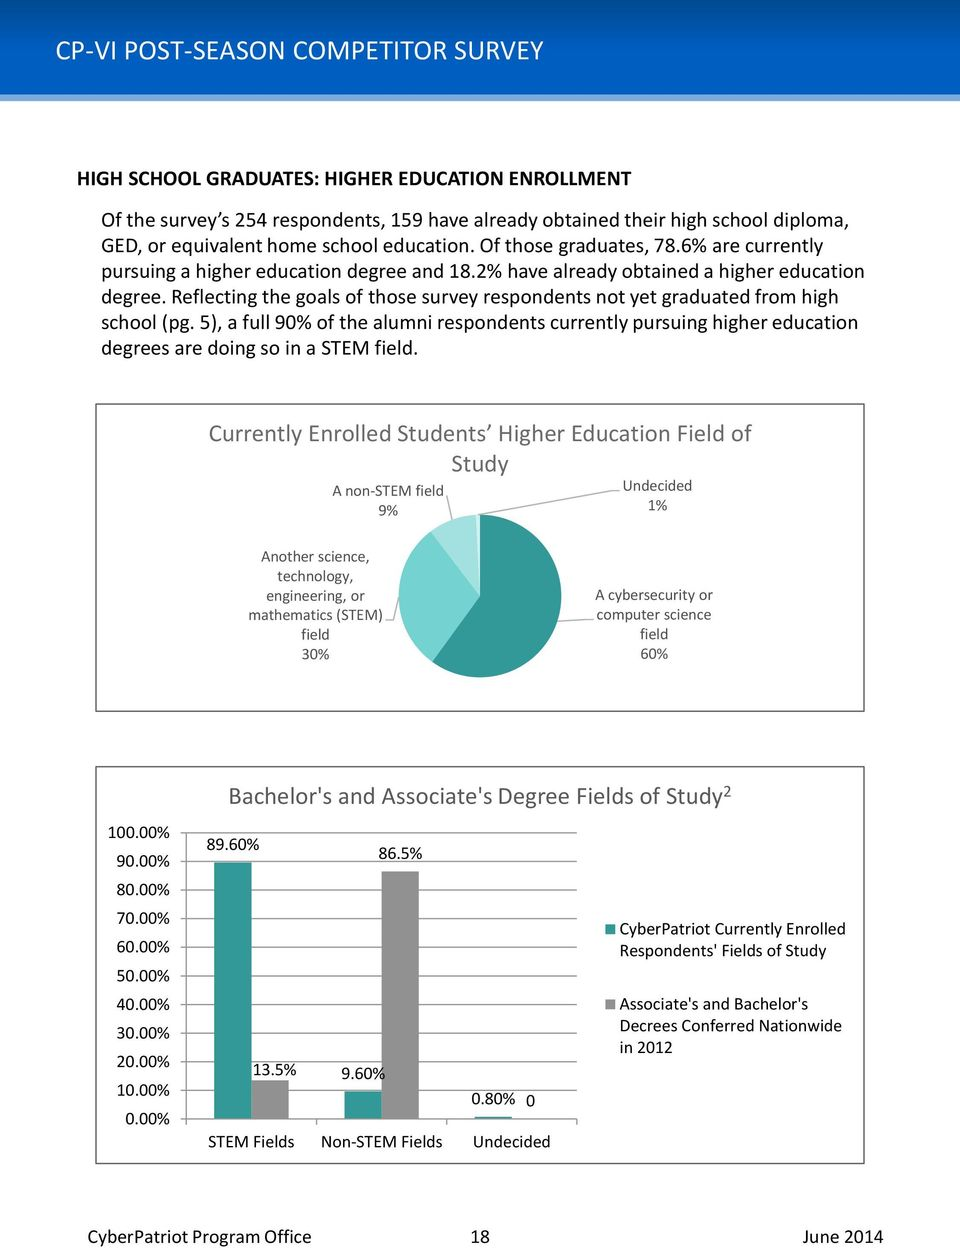 Reflecting the goals of those survey respondents not yet graduated from high school (pg.